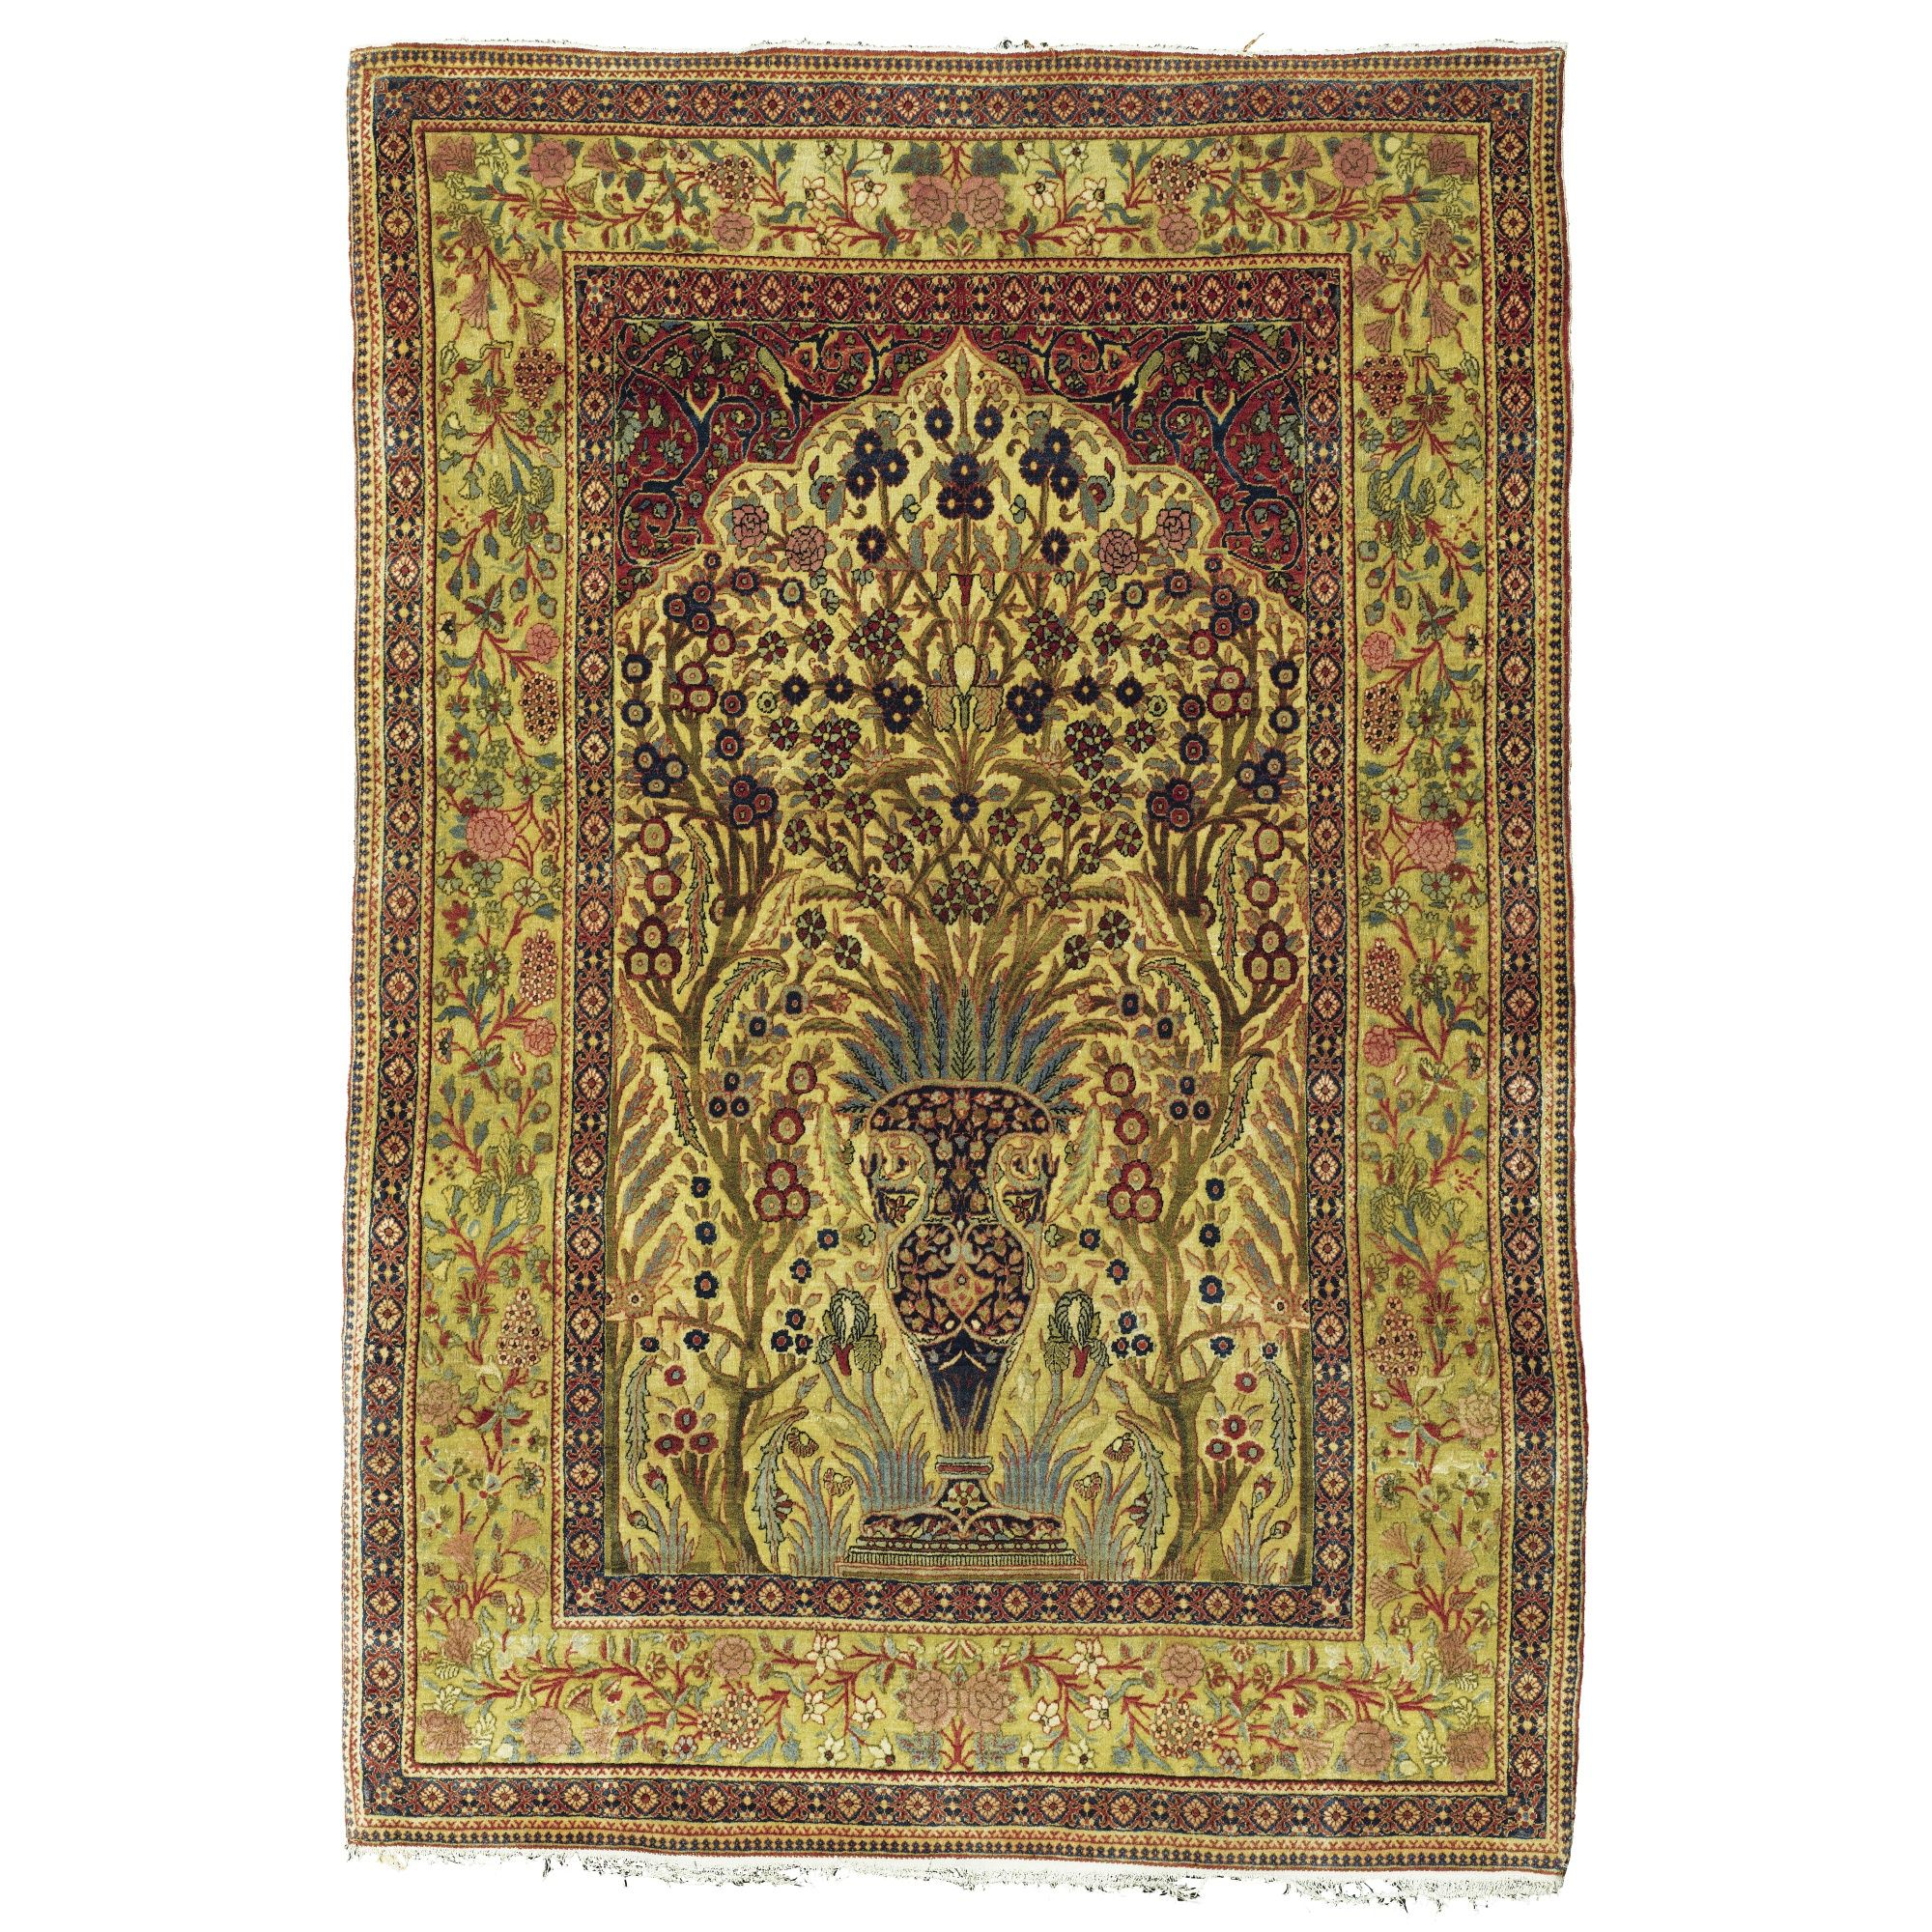 The Gheordez Prayer Rug Was Initially Created: A 'Mohtashem' Kashan Prayer Rug, Central Persia